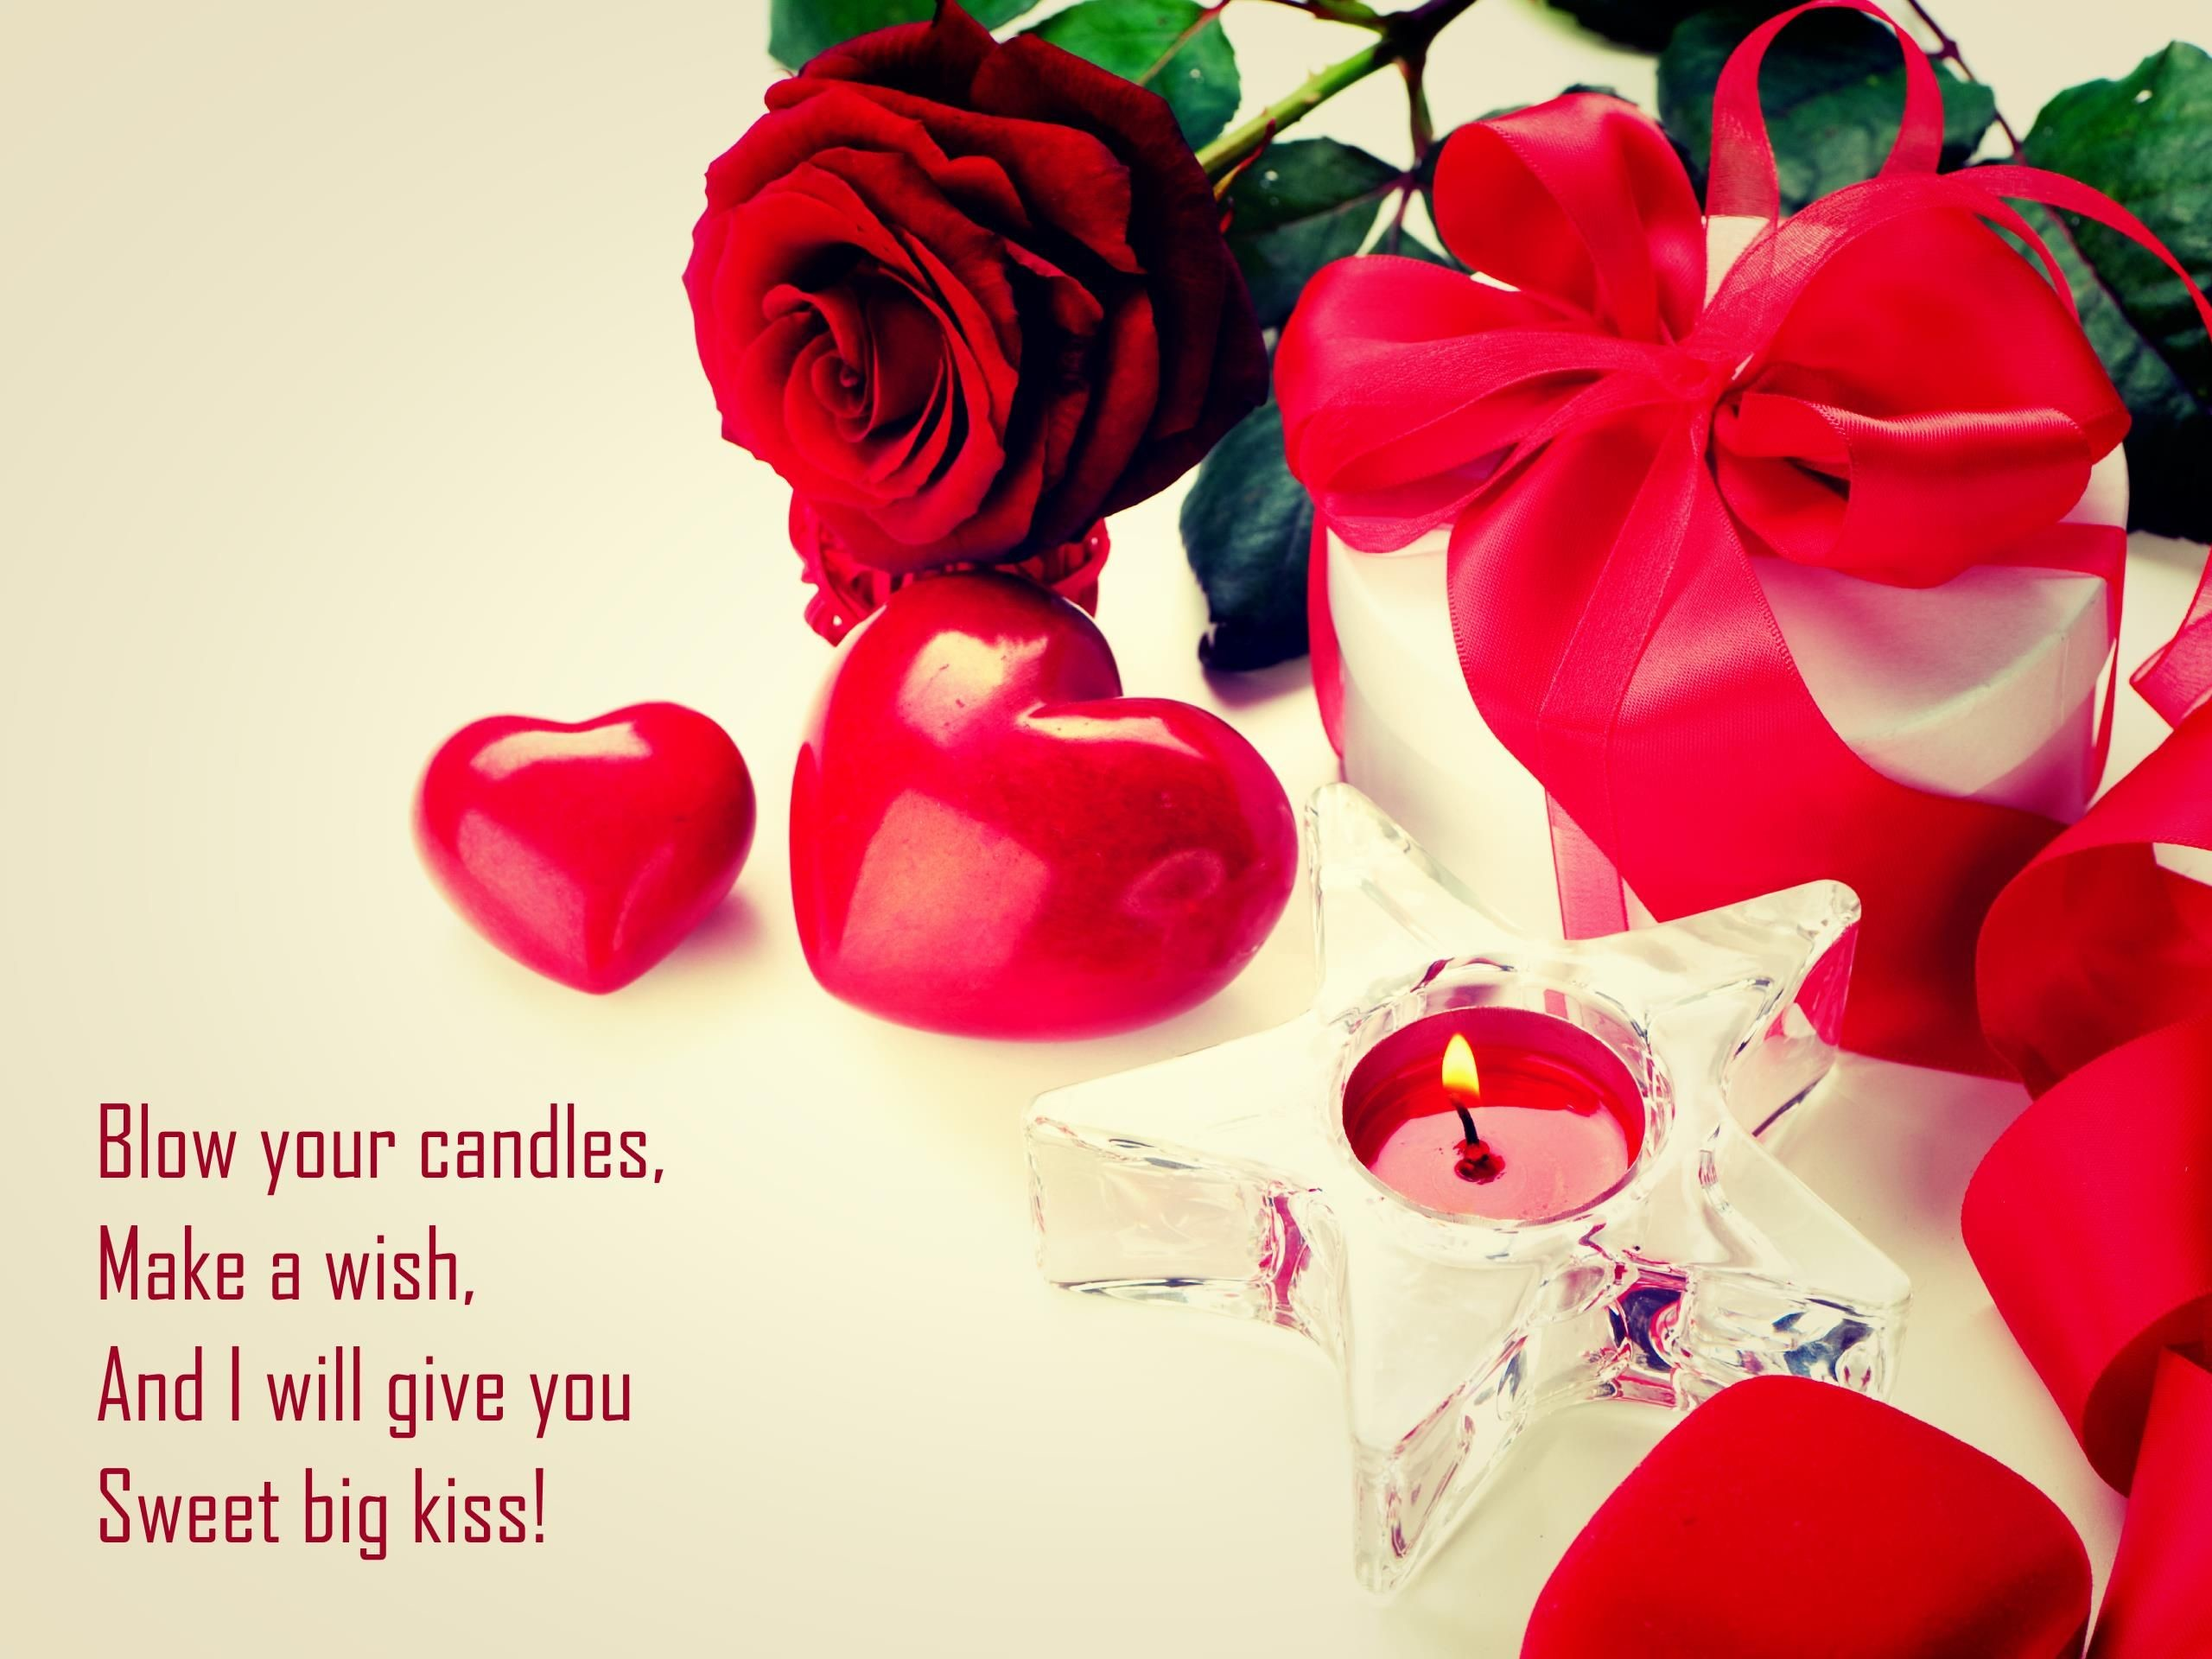 Sad Love Msg Beautiful Love Photos Download 17490 Hd Wallpaper Backgrounds Download